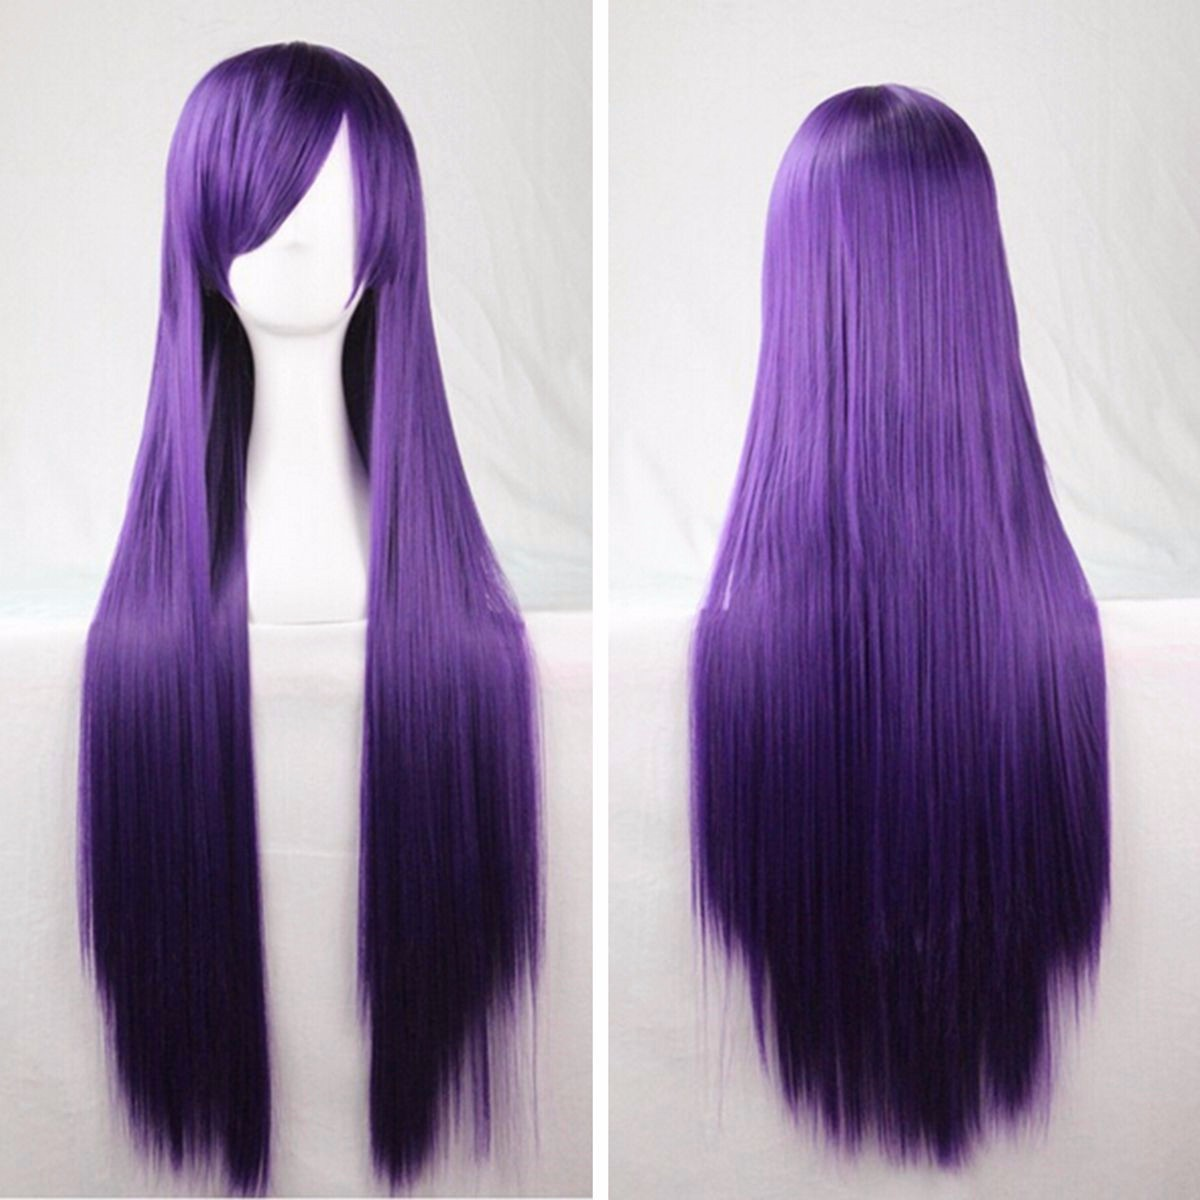 100cm Womens Long Anime High-temperature Fiber Wigs Cosplay Party Straight Hair Full Wig